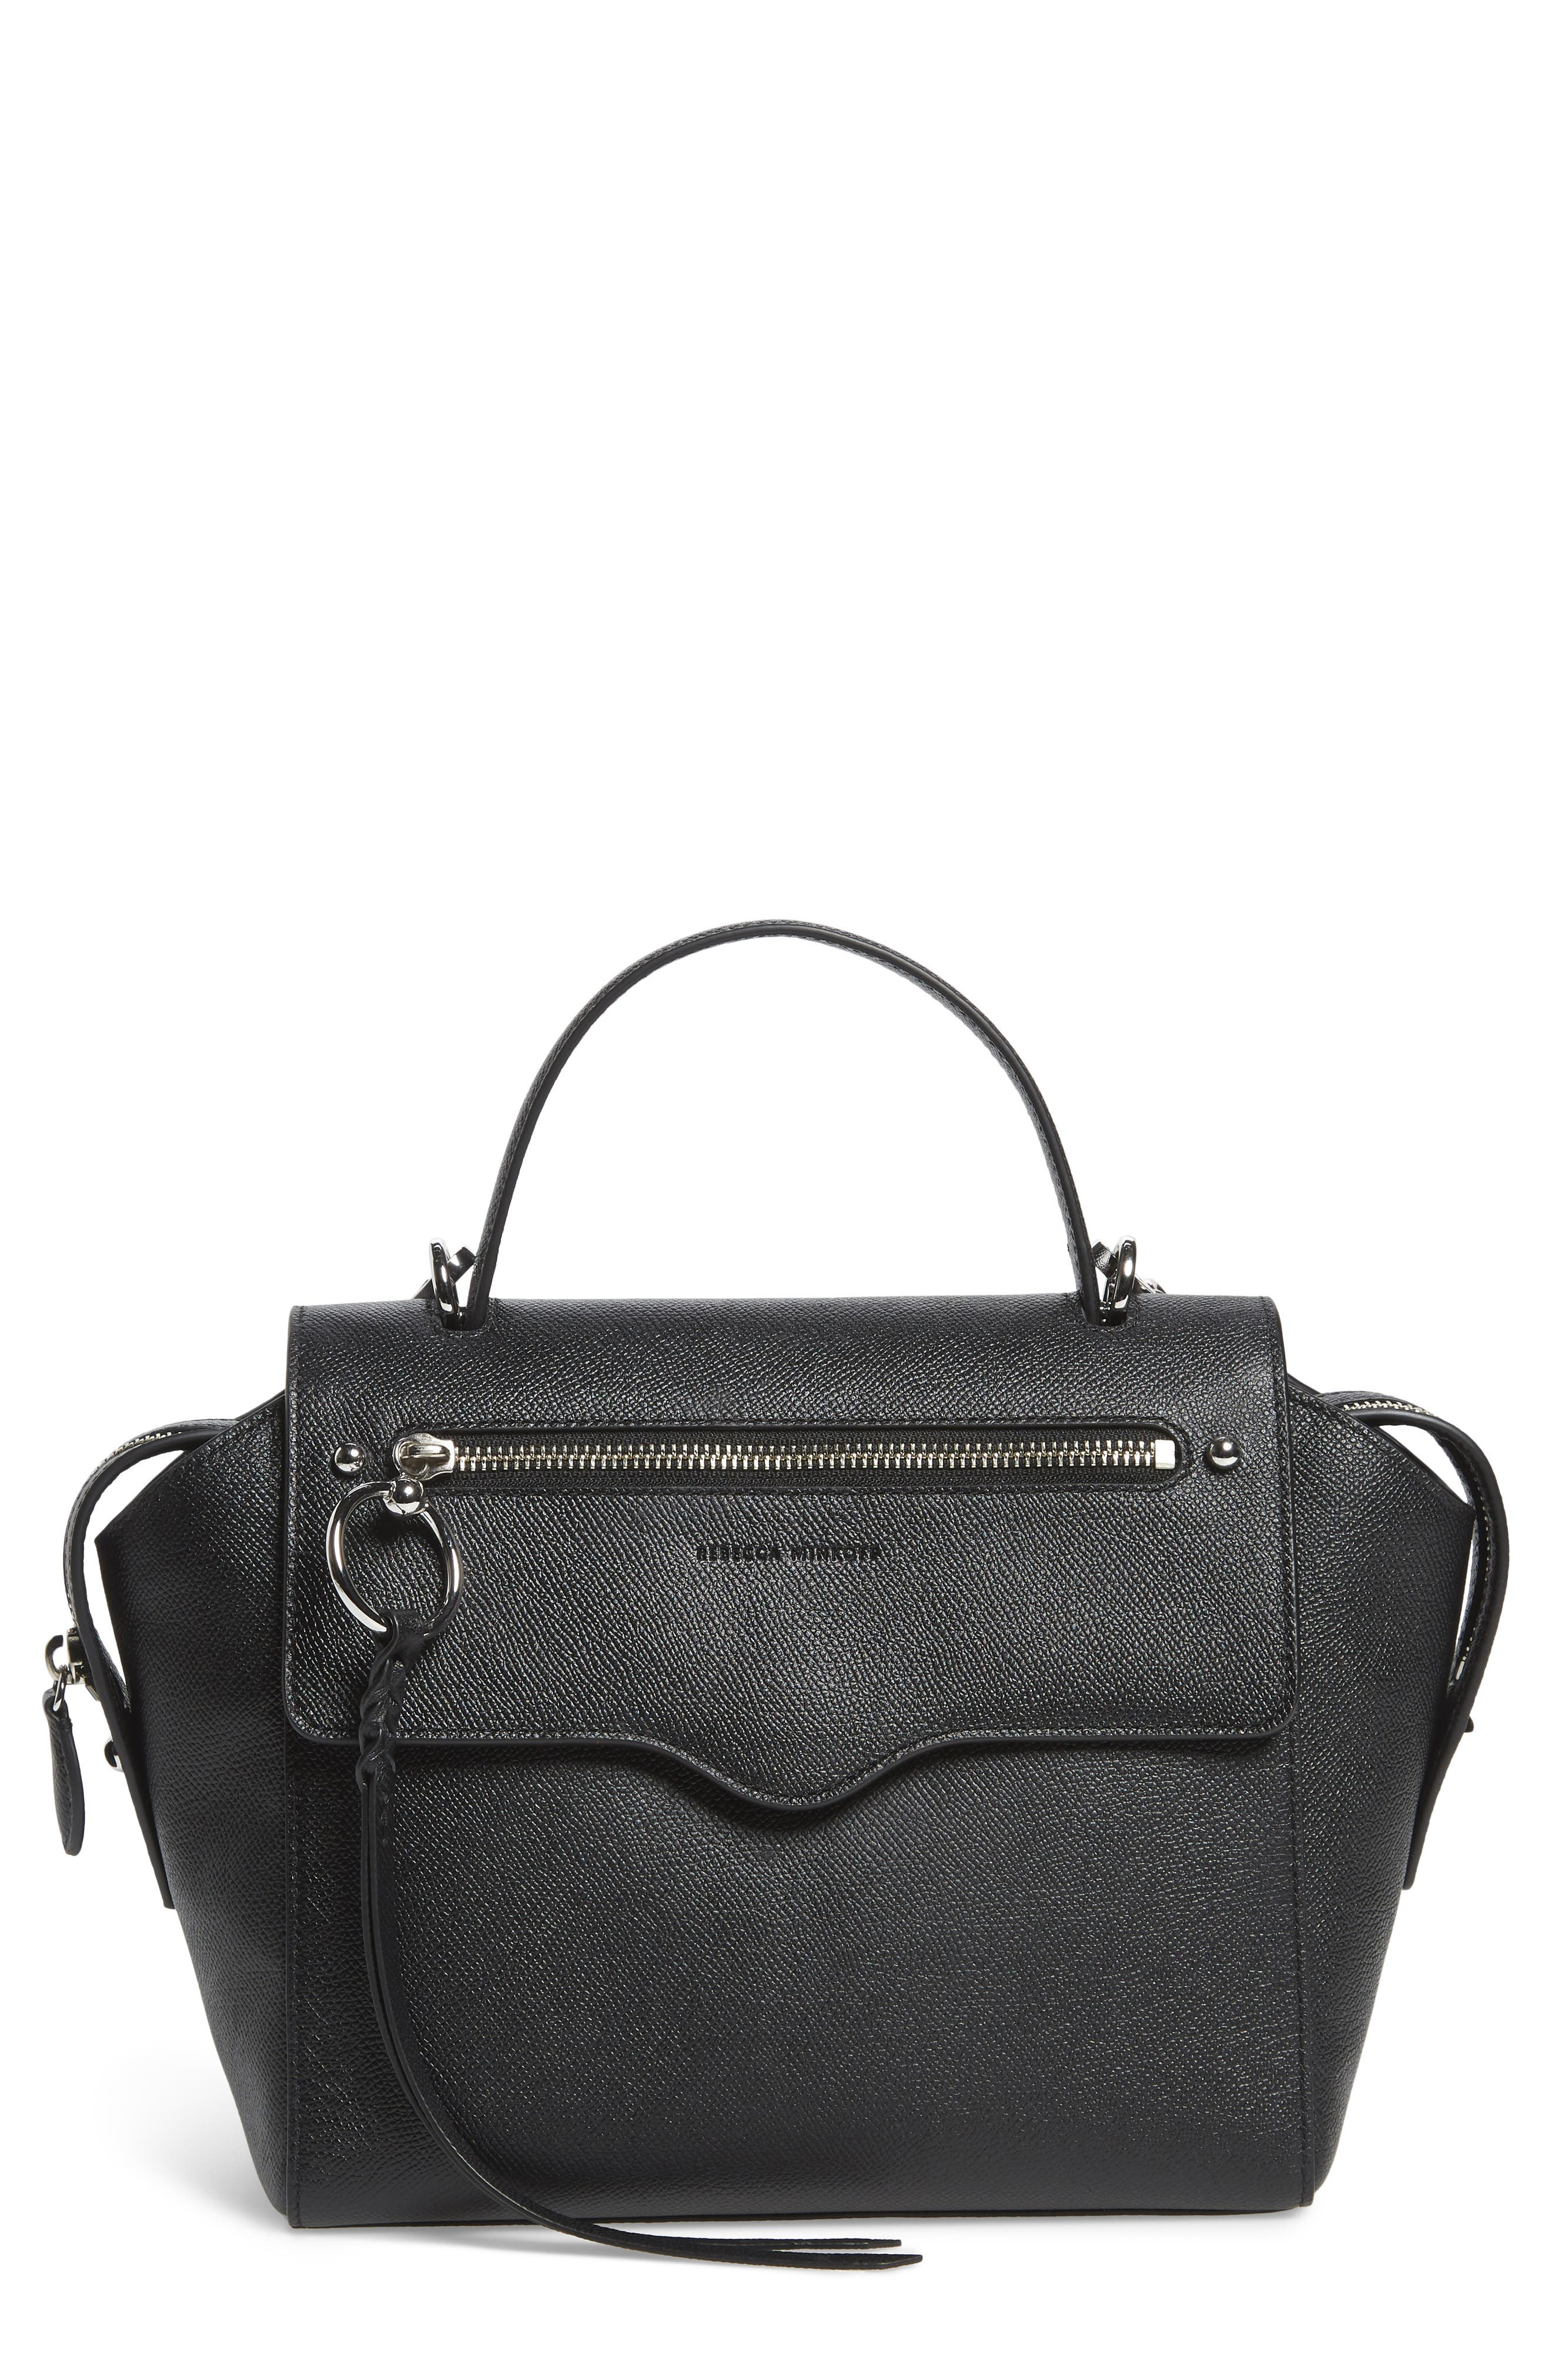 Image of Rebecca Minkoff Gabby Leather Satchel